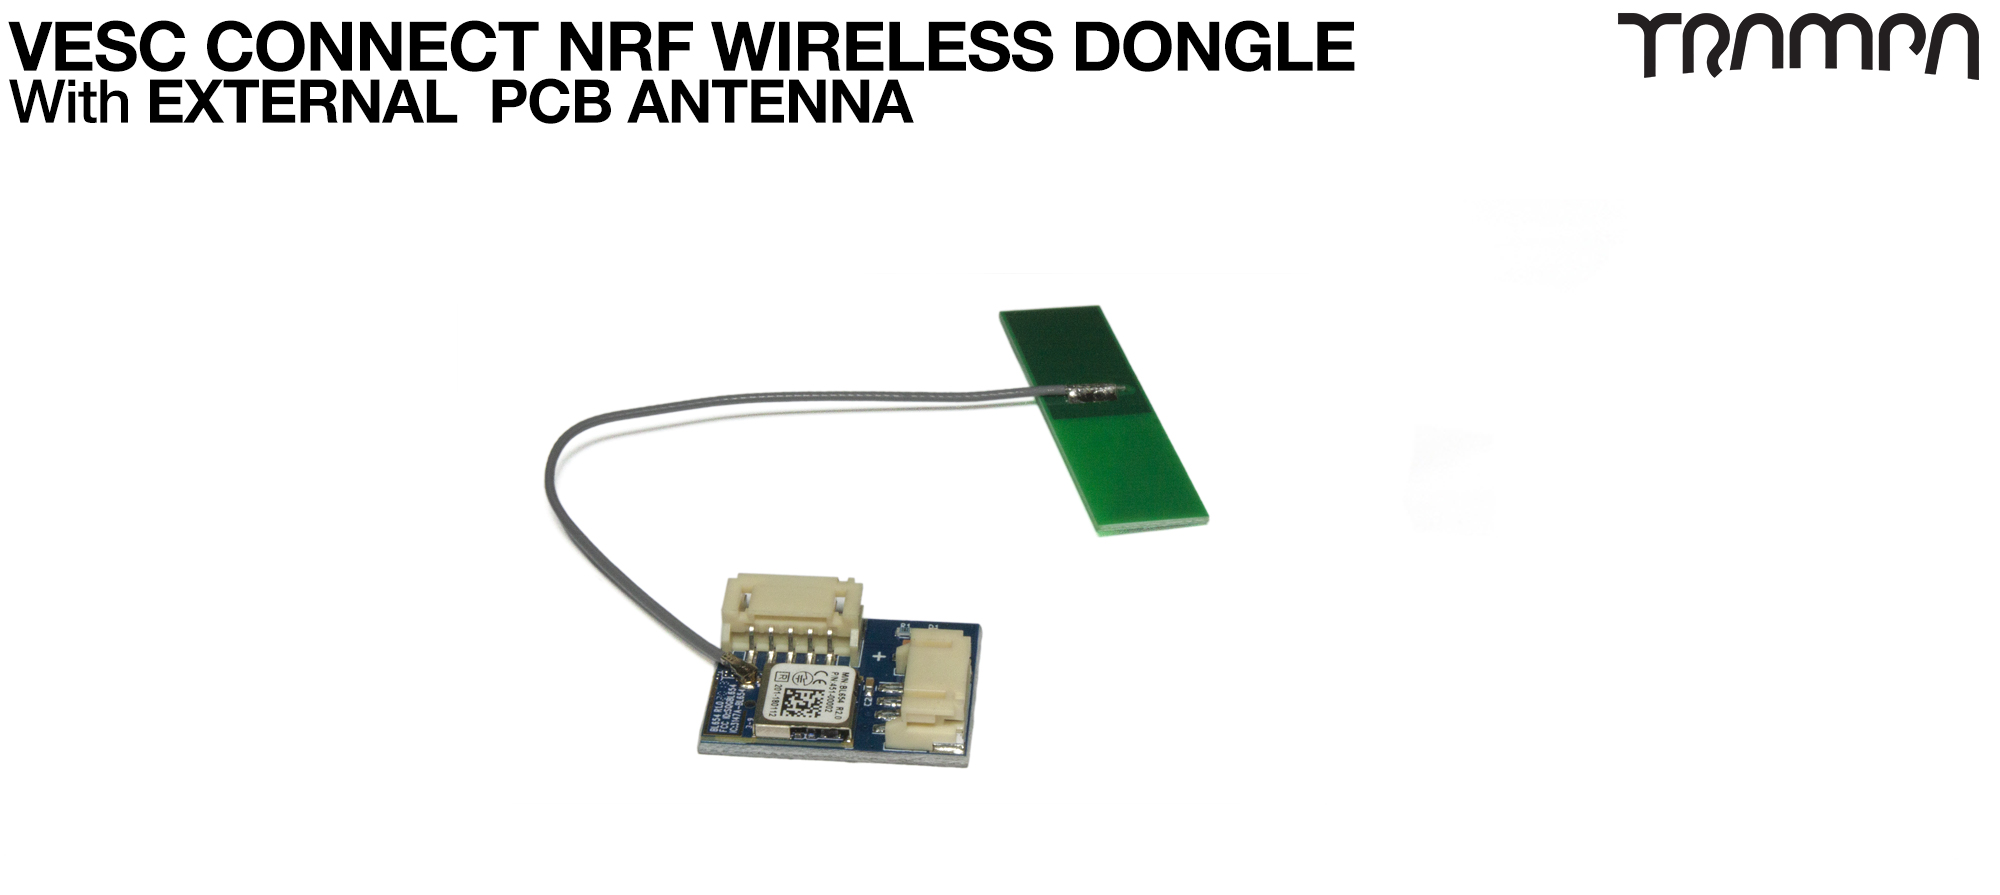 VESC Connect NRF Wireless Dongle with EXTERNAL PCB ANTENNA